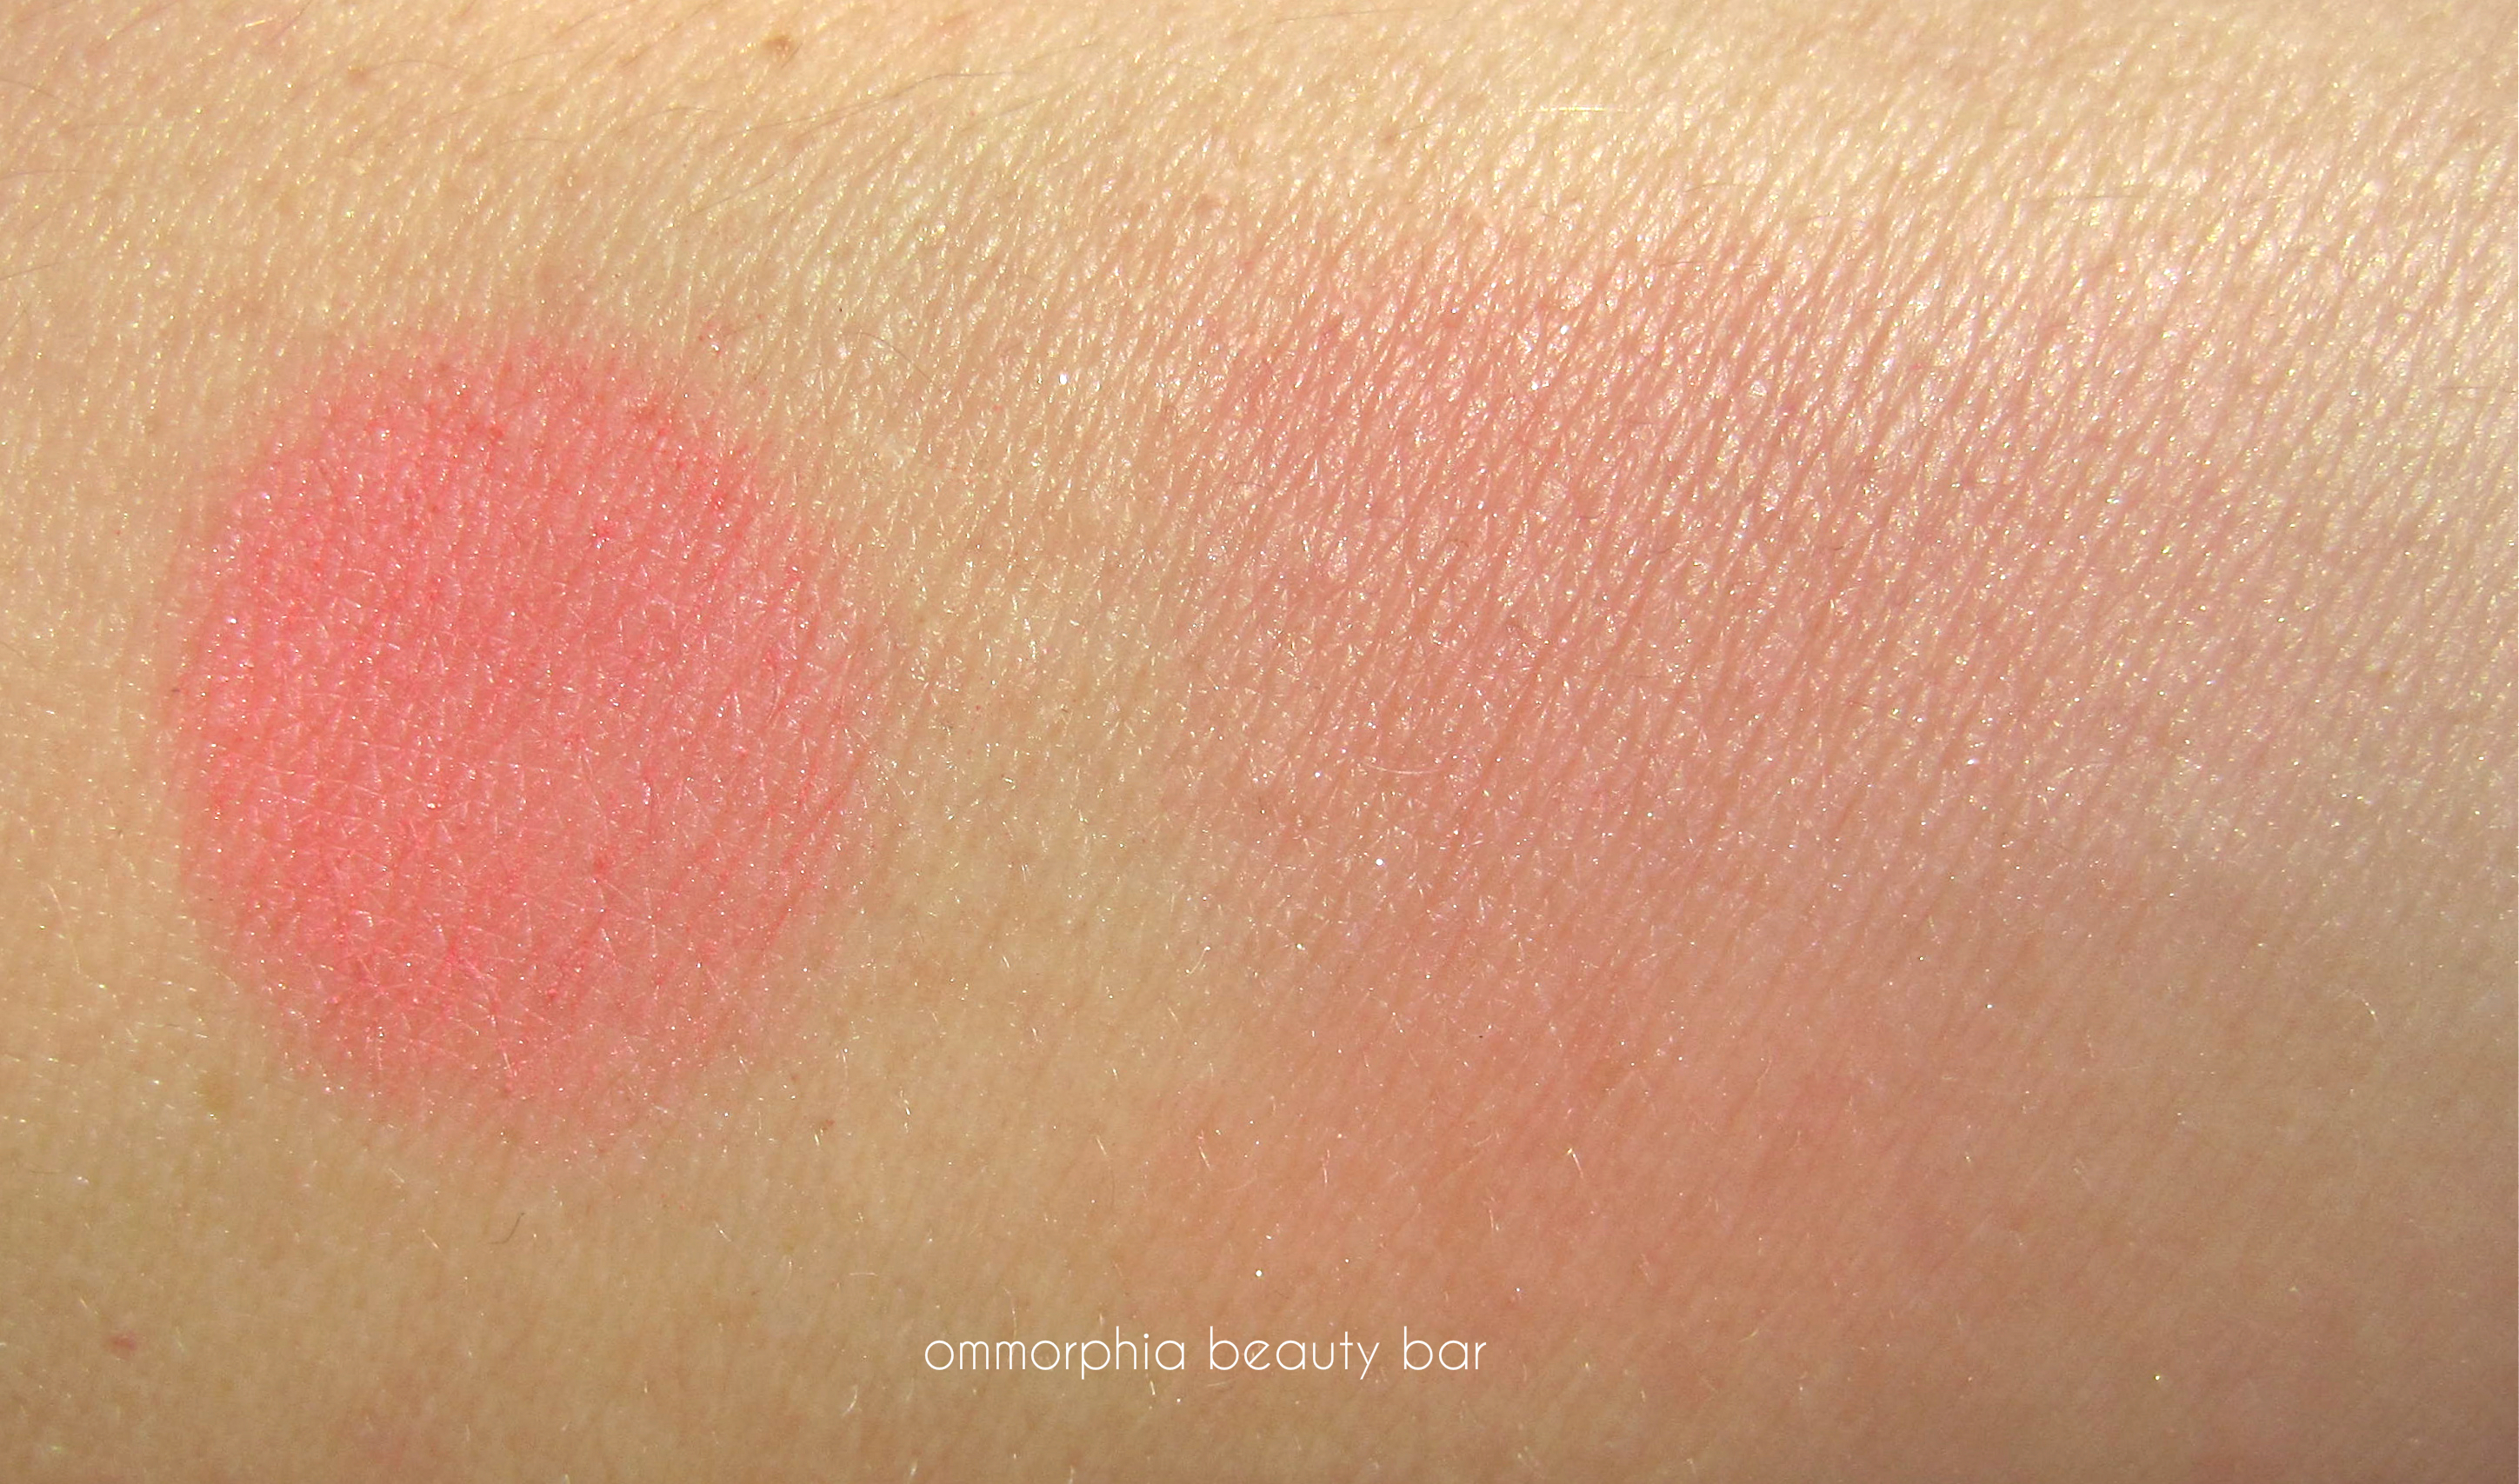 Dior Corail Bagatelle swatch